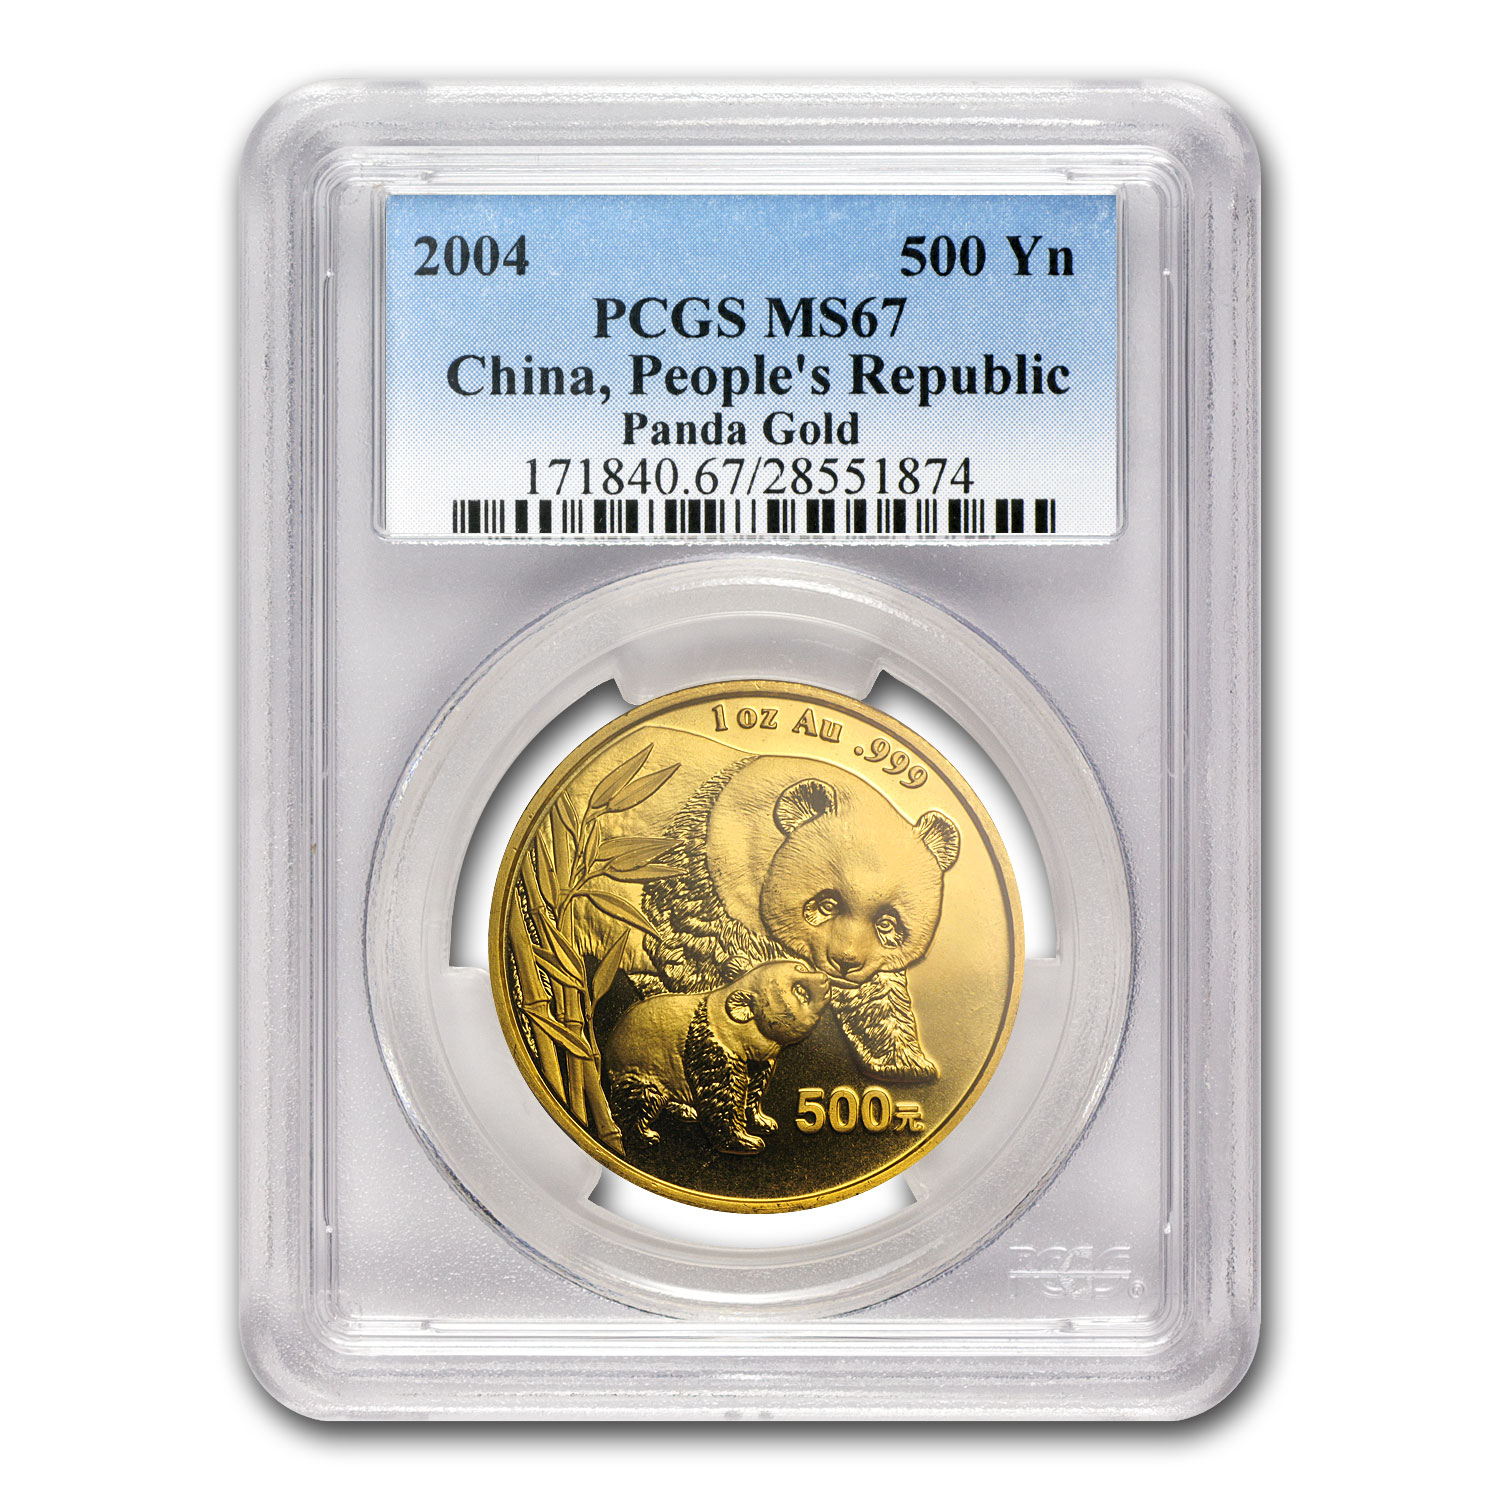 2004 1 oz Gold Chinese Panda MS-67 PCGS